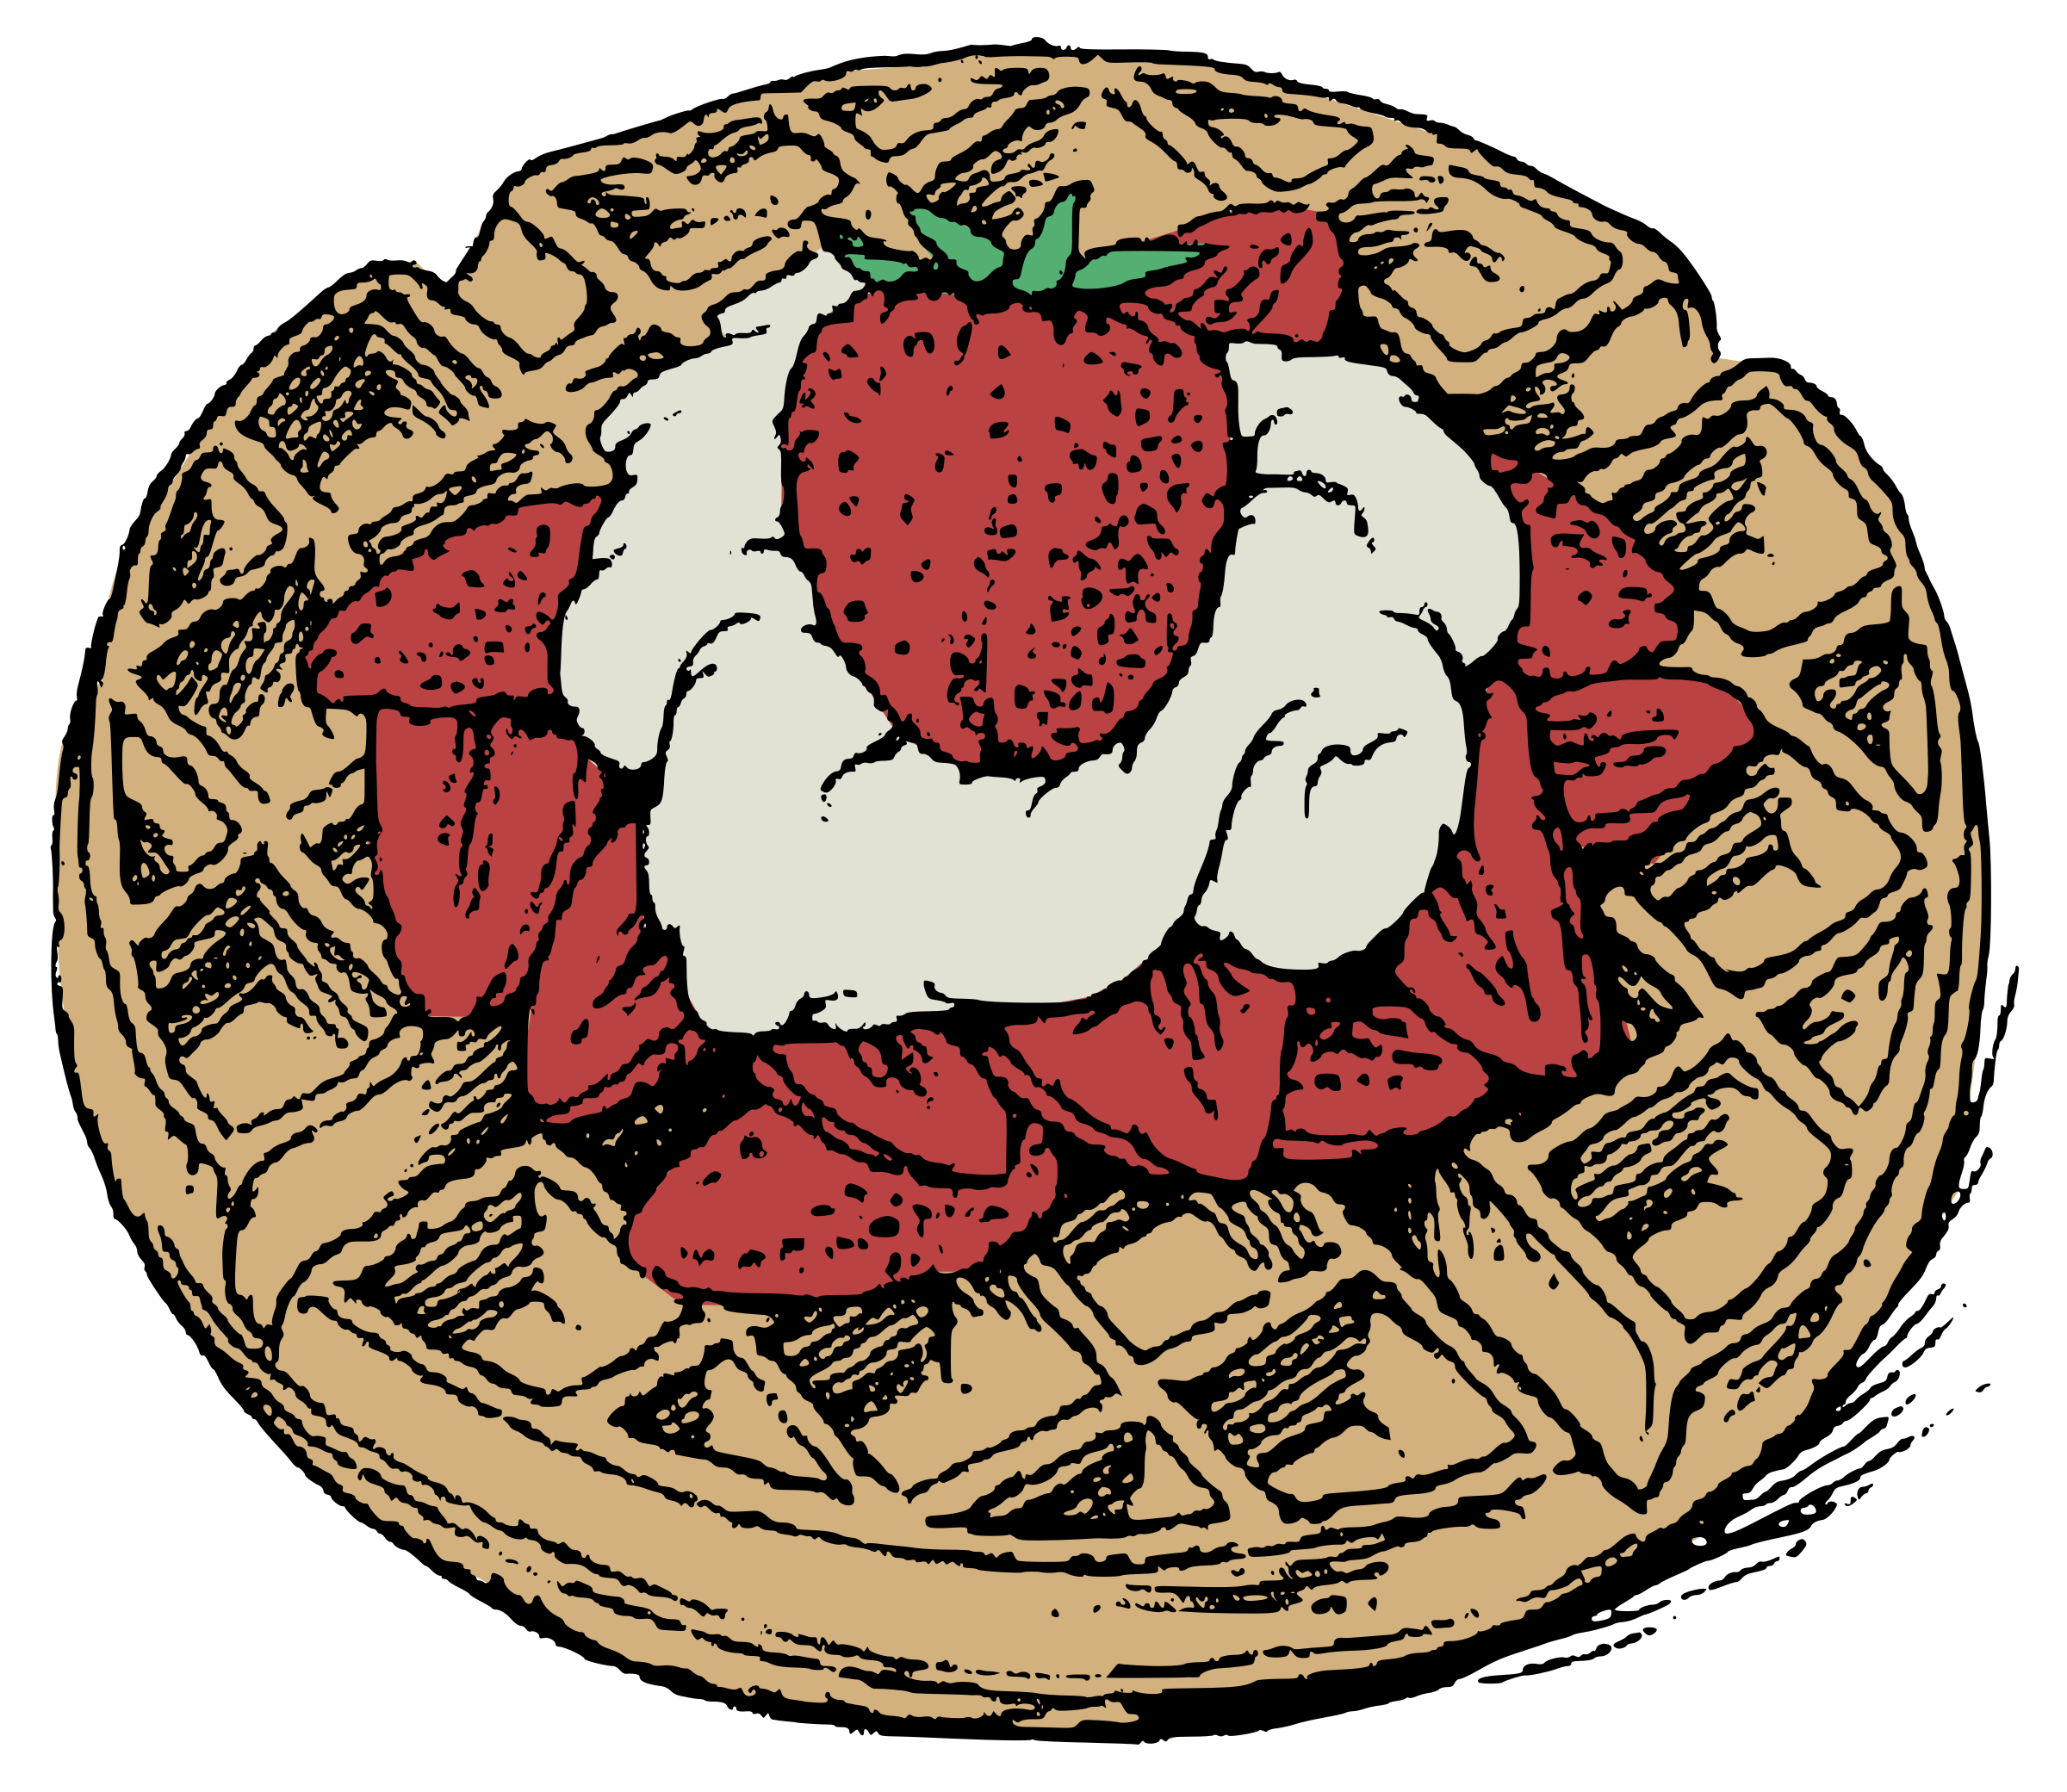 Waffle clipart png. Belgian waffles colour big